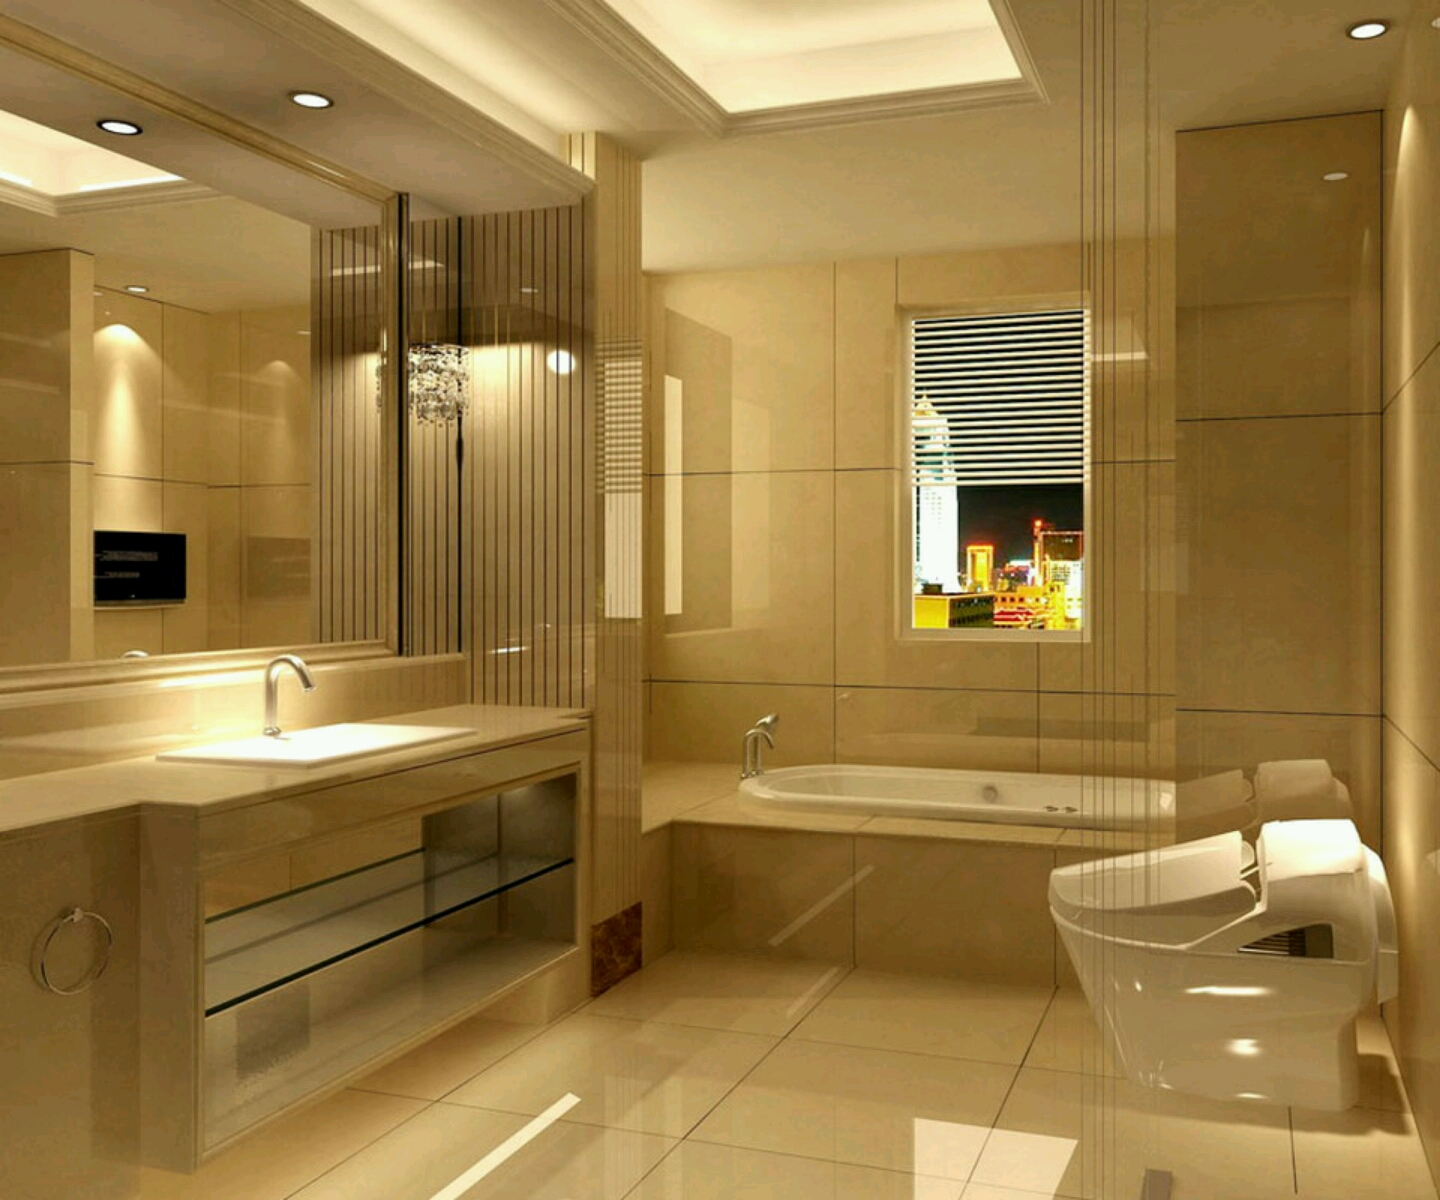 Modern bathrooms setting ideas furniture gallery for Modern bathroom ideas